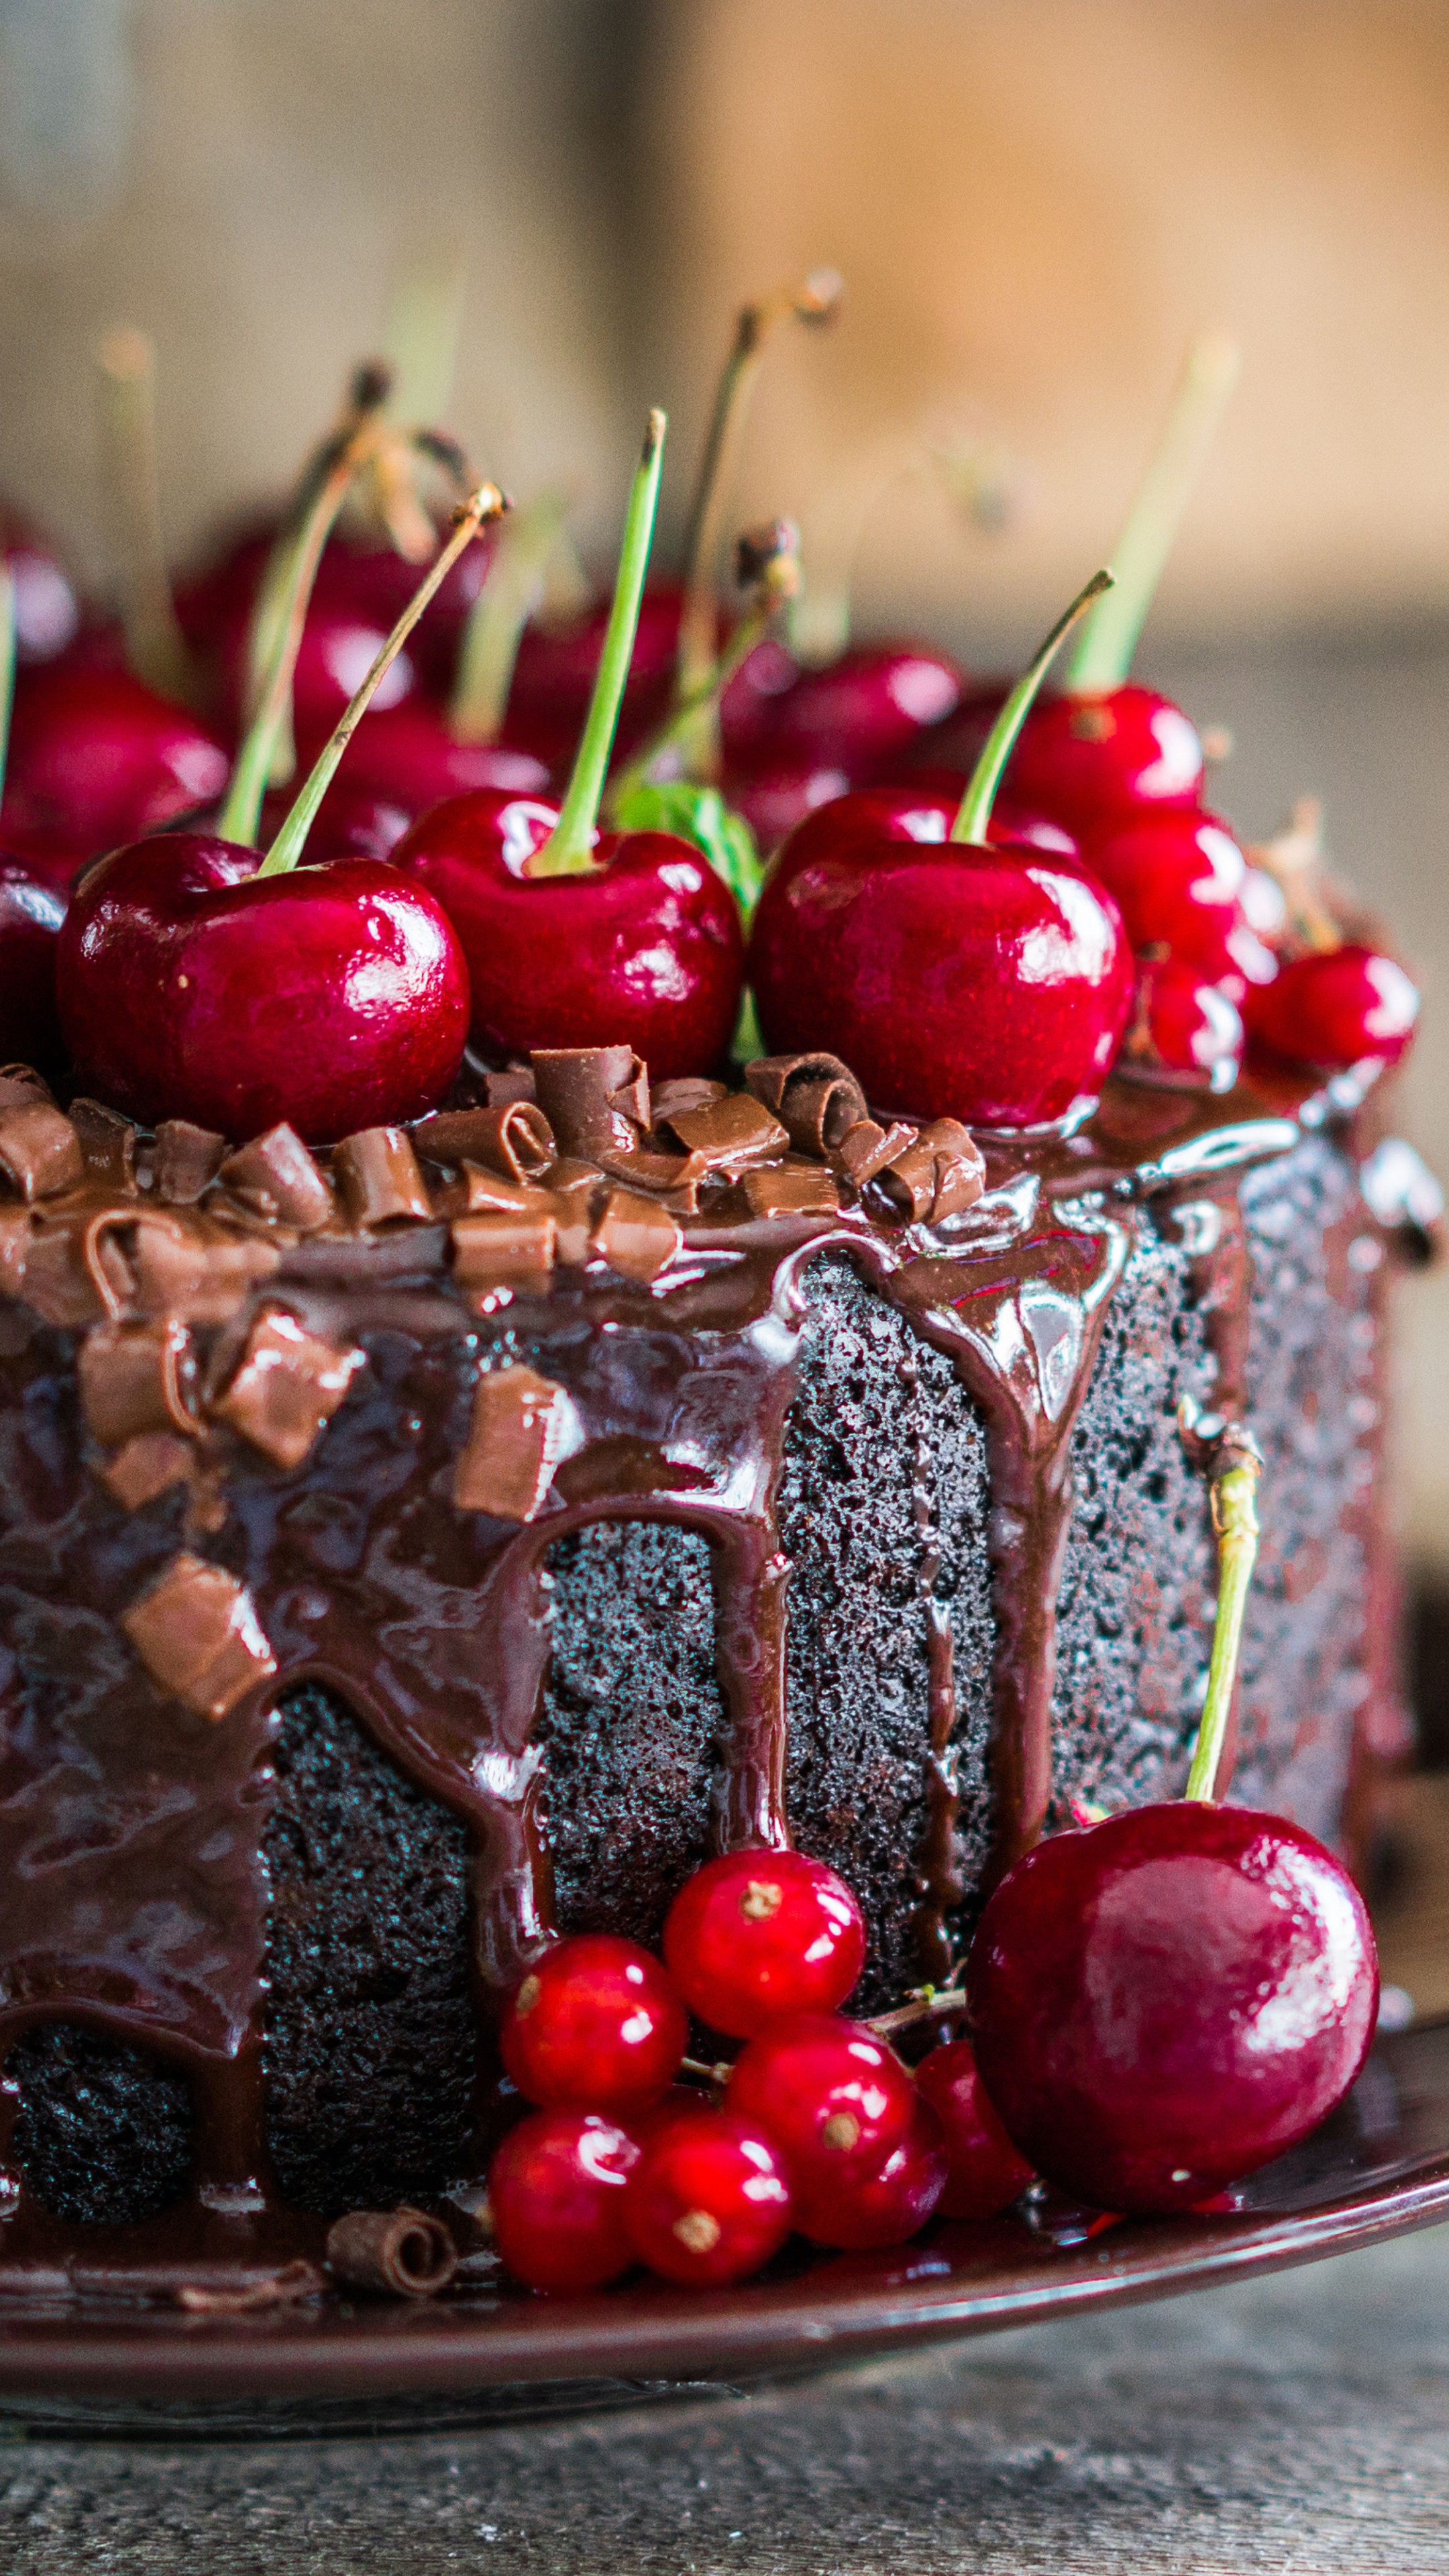 Birthday Wallpaper With Quotes Download Wallpaper Cake Receipt Chocolate Cherry 5k Food 17068